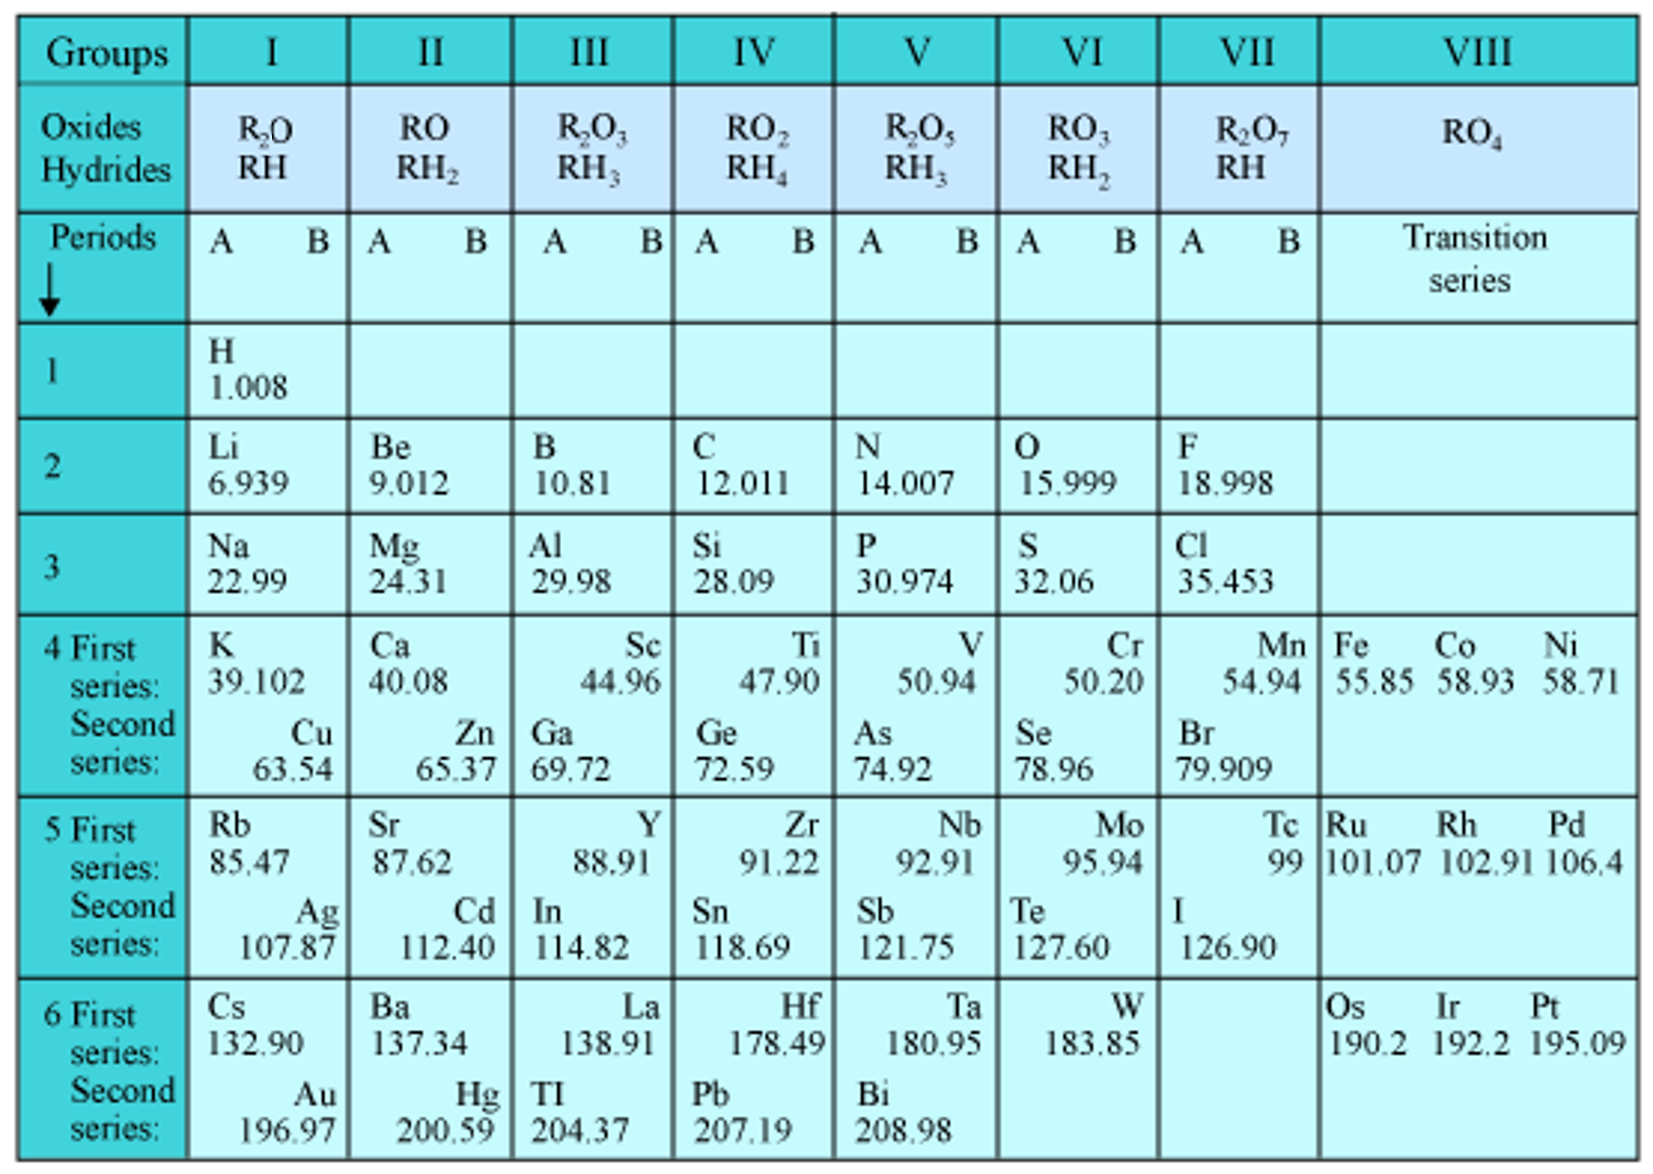 Periodic classification of elements class 10 revision important ques periodic classification of elements urtaz Image collections